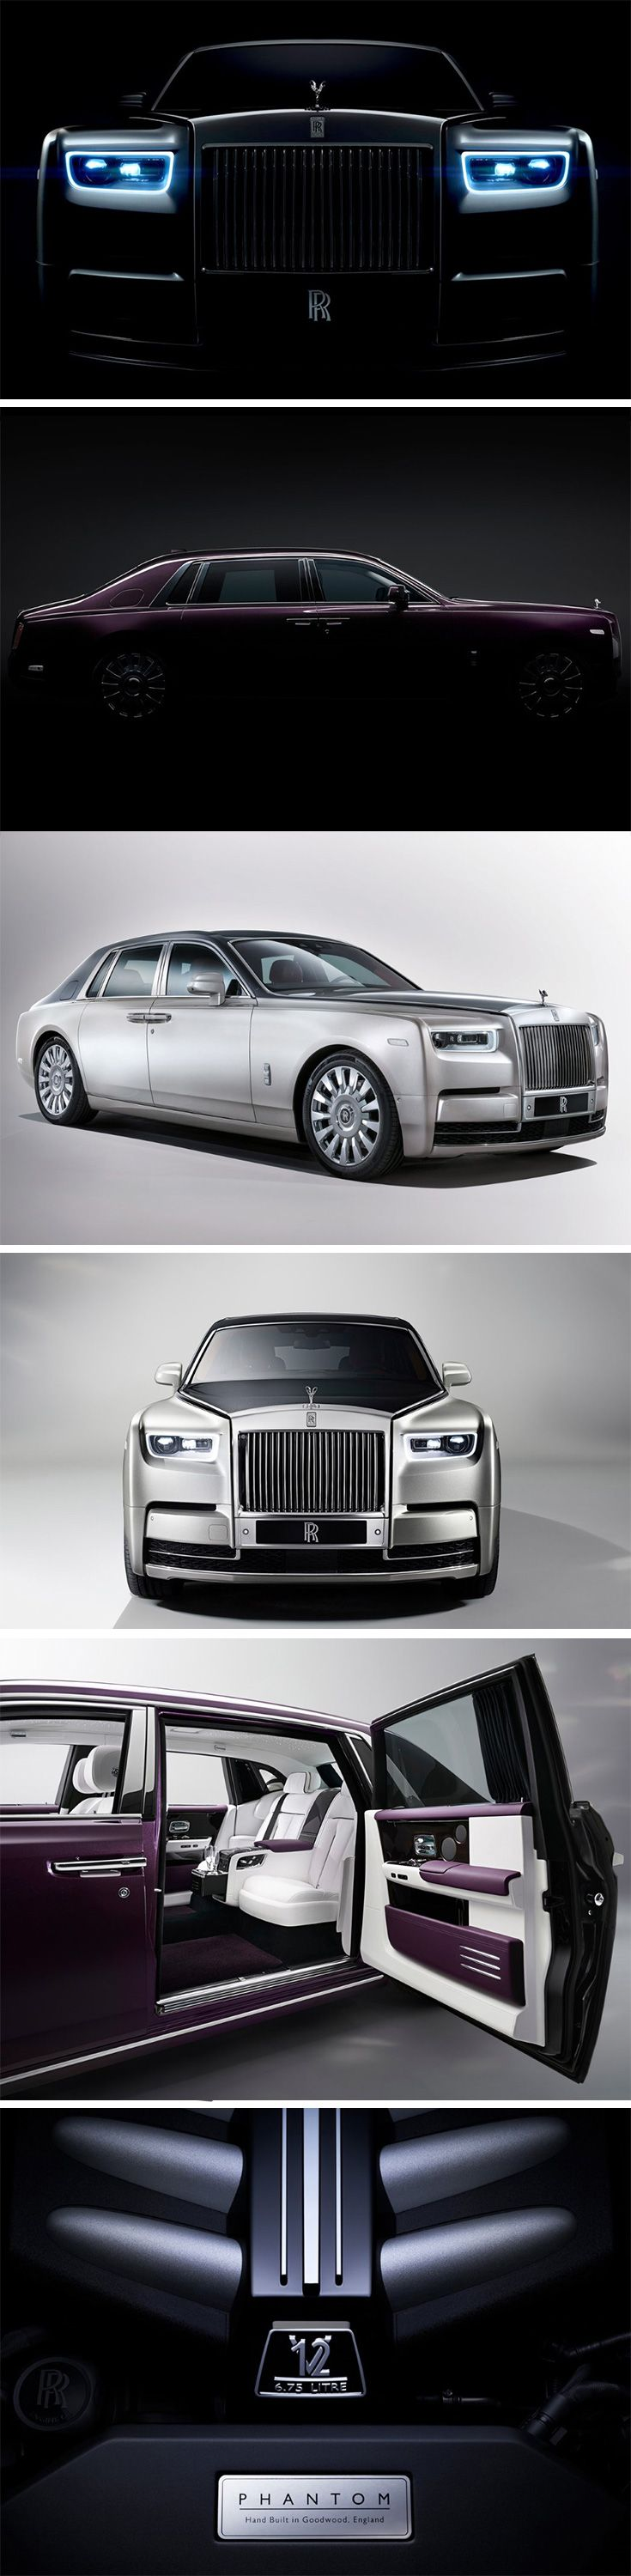 Ninety two years since it was first announced, the Rolls-Royce Phantom is the world's longest-lived model name in automotive history. Fourteen years since its last edition back in 2003, we finally now get a look at the Phantom VIII that launches in 2018. The car rests on a new aluminum space-frame that will now become a standard for all Rolls-Royce cars moving forward.